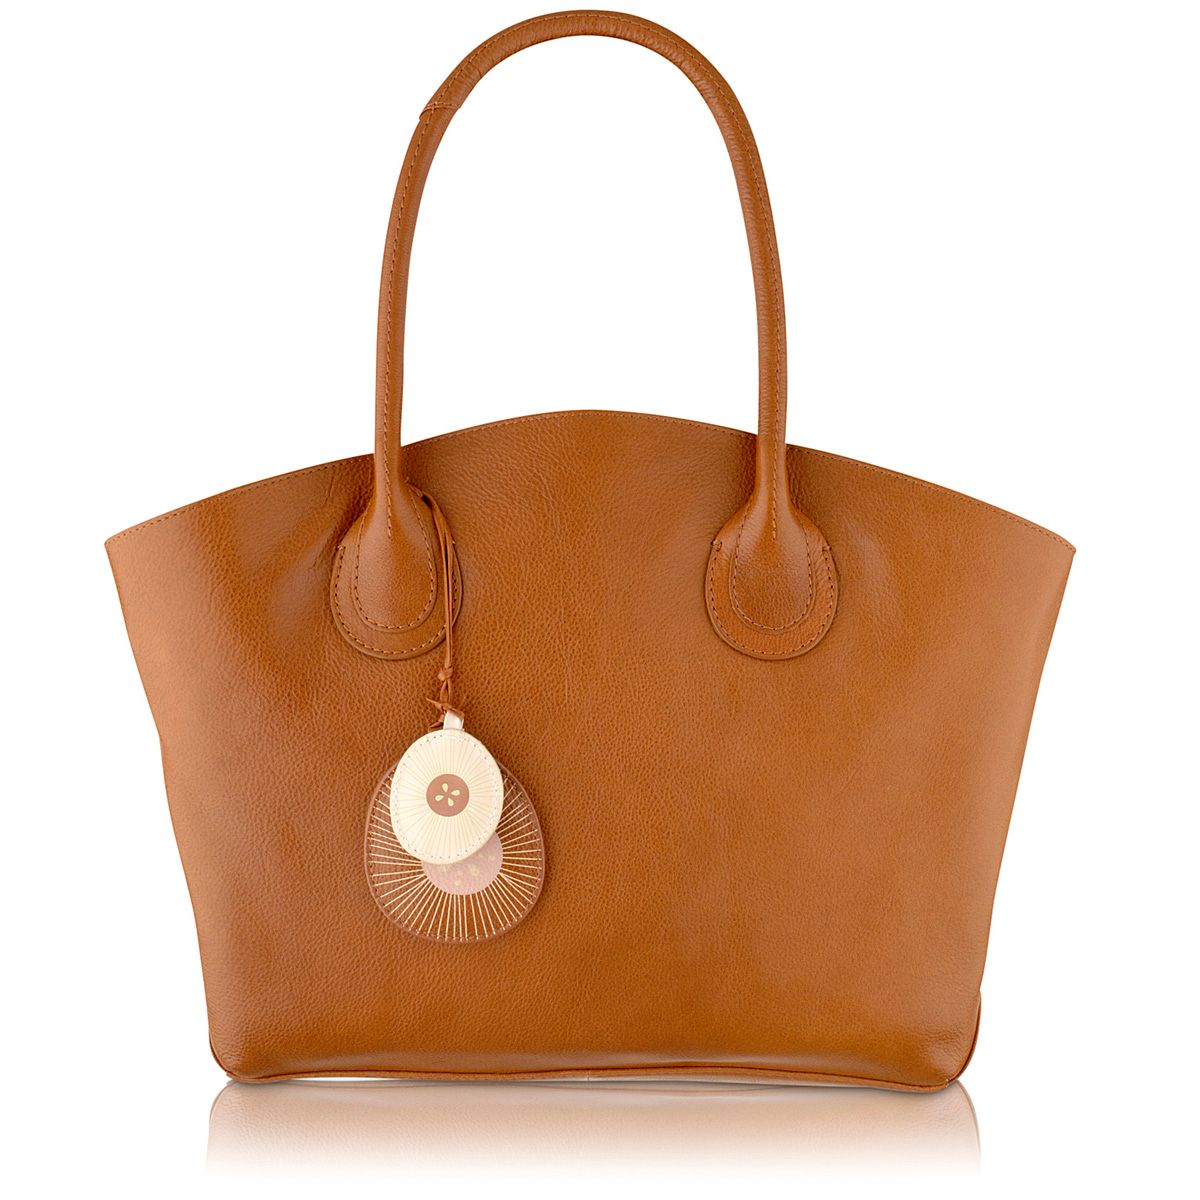 Overton tan large leather tote bag